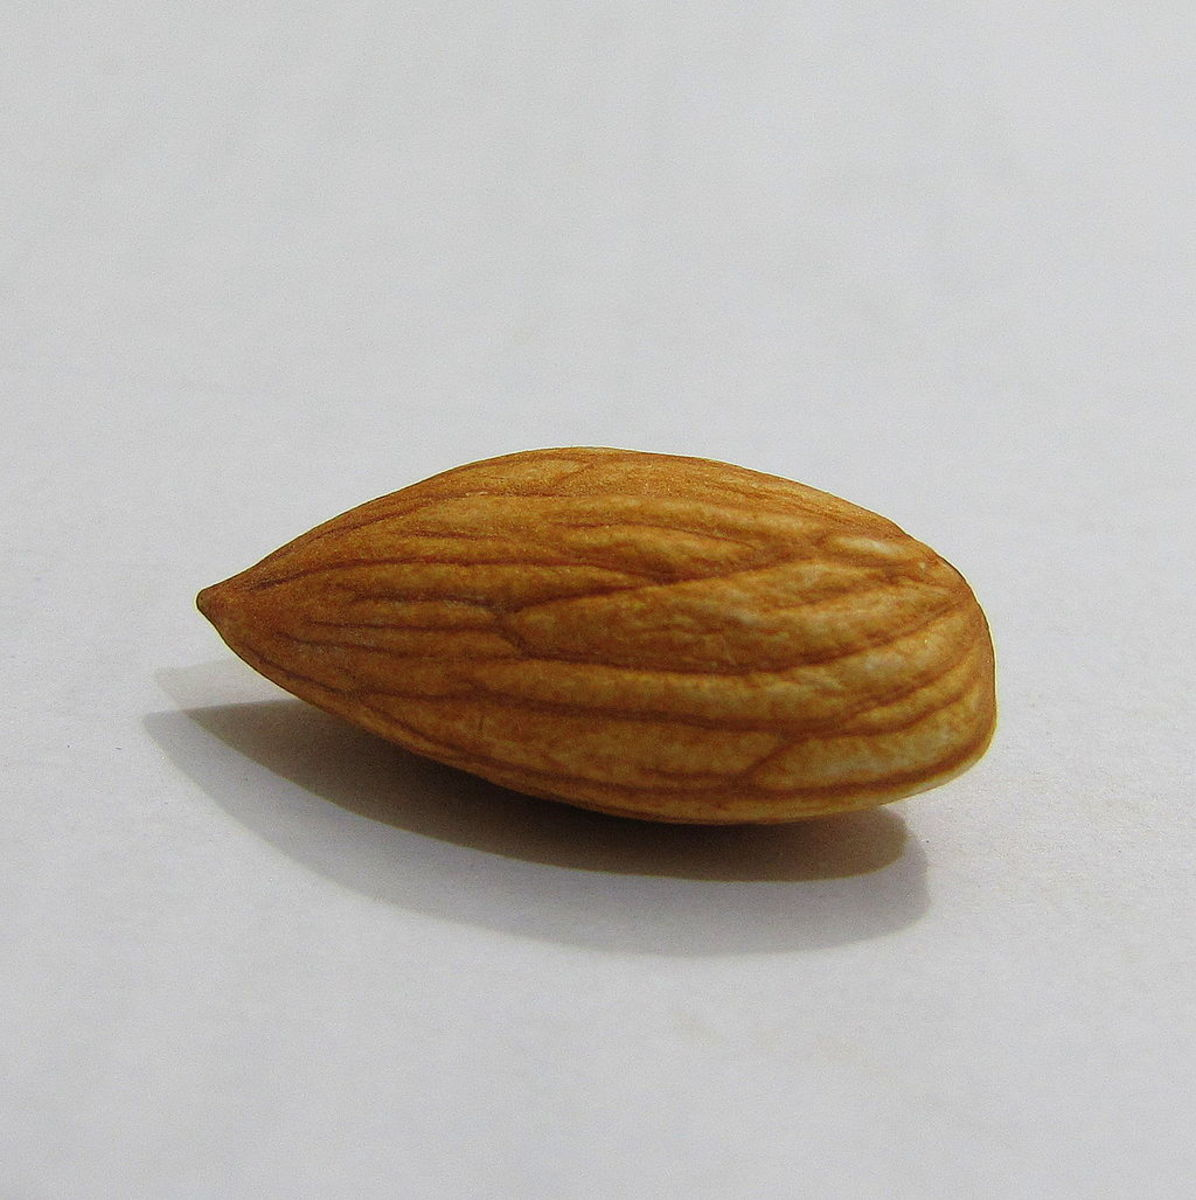 Almond gives skin lightening effect